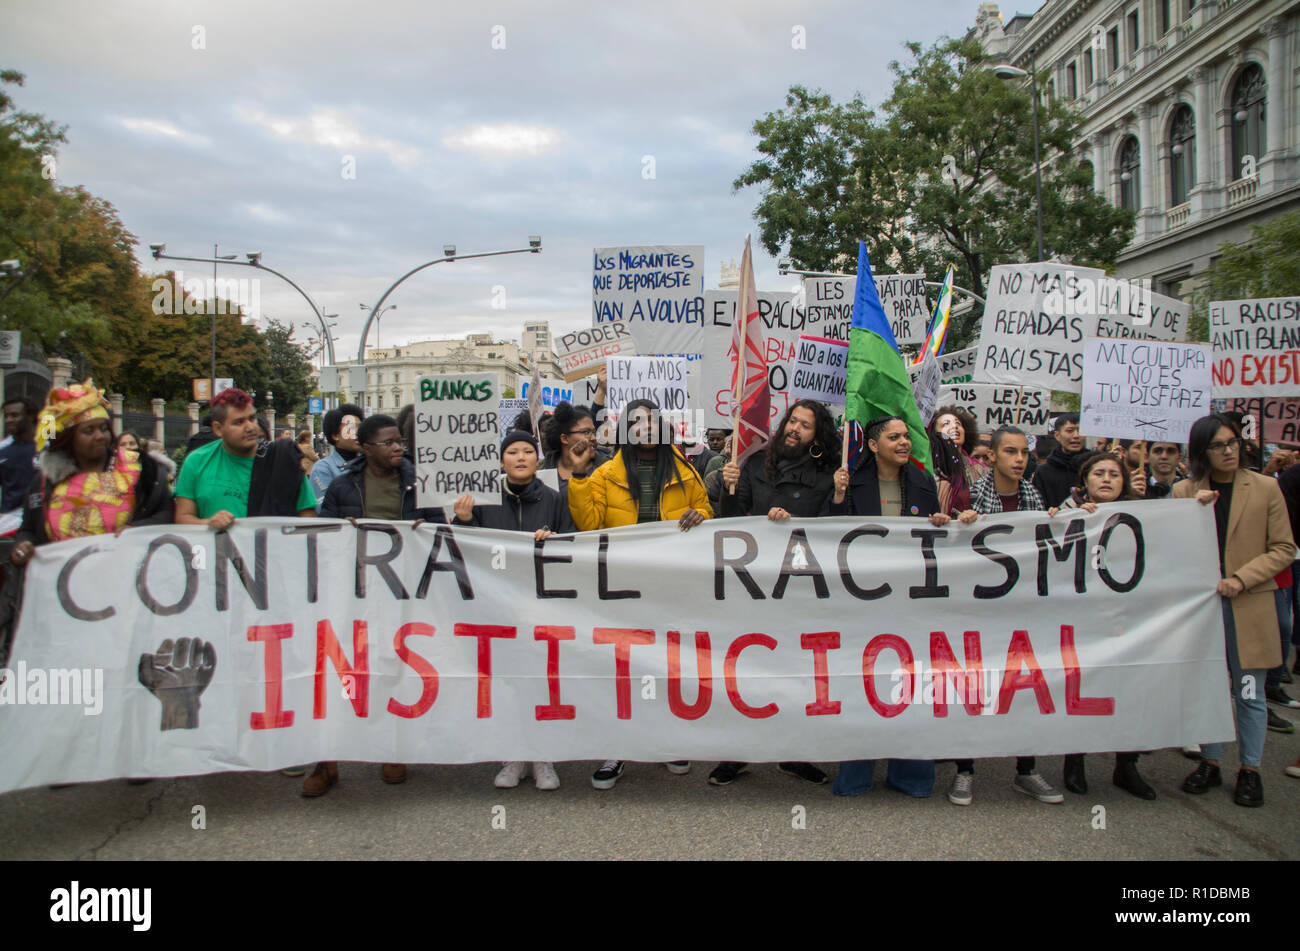 Hundreds of people of different nationalities protested against racism in Spanish institutions in Madrid. - Stock Image